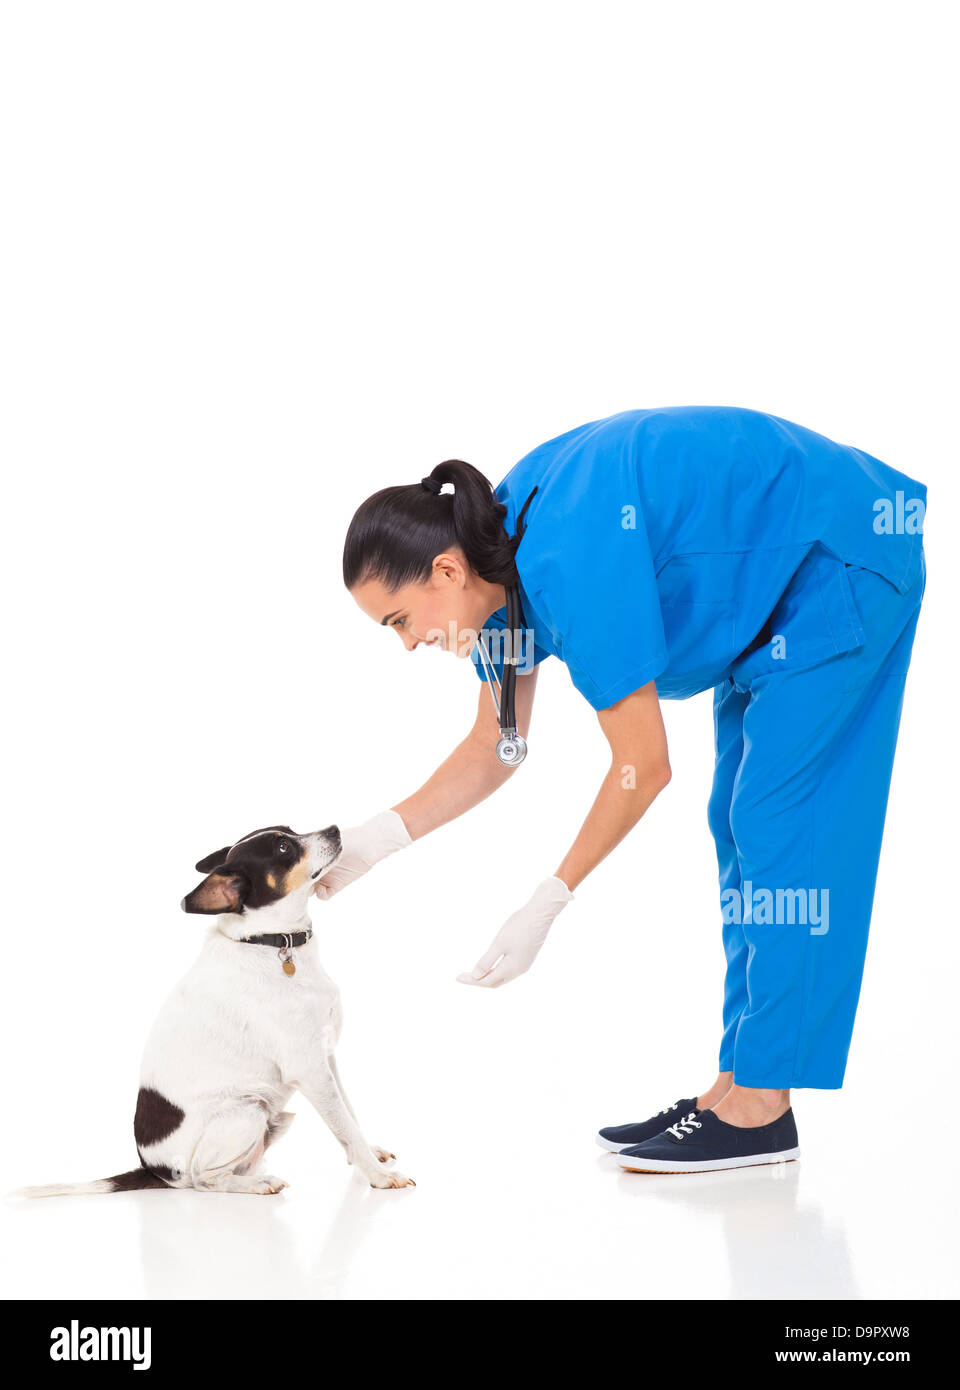 vet doctor playing with dog isolated on white background - Stock Image